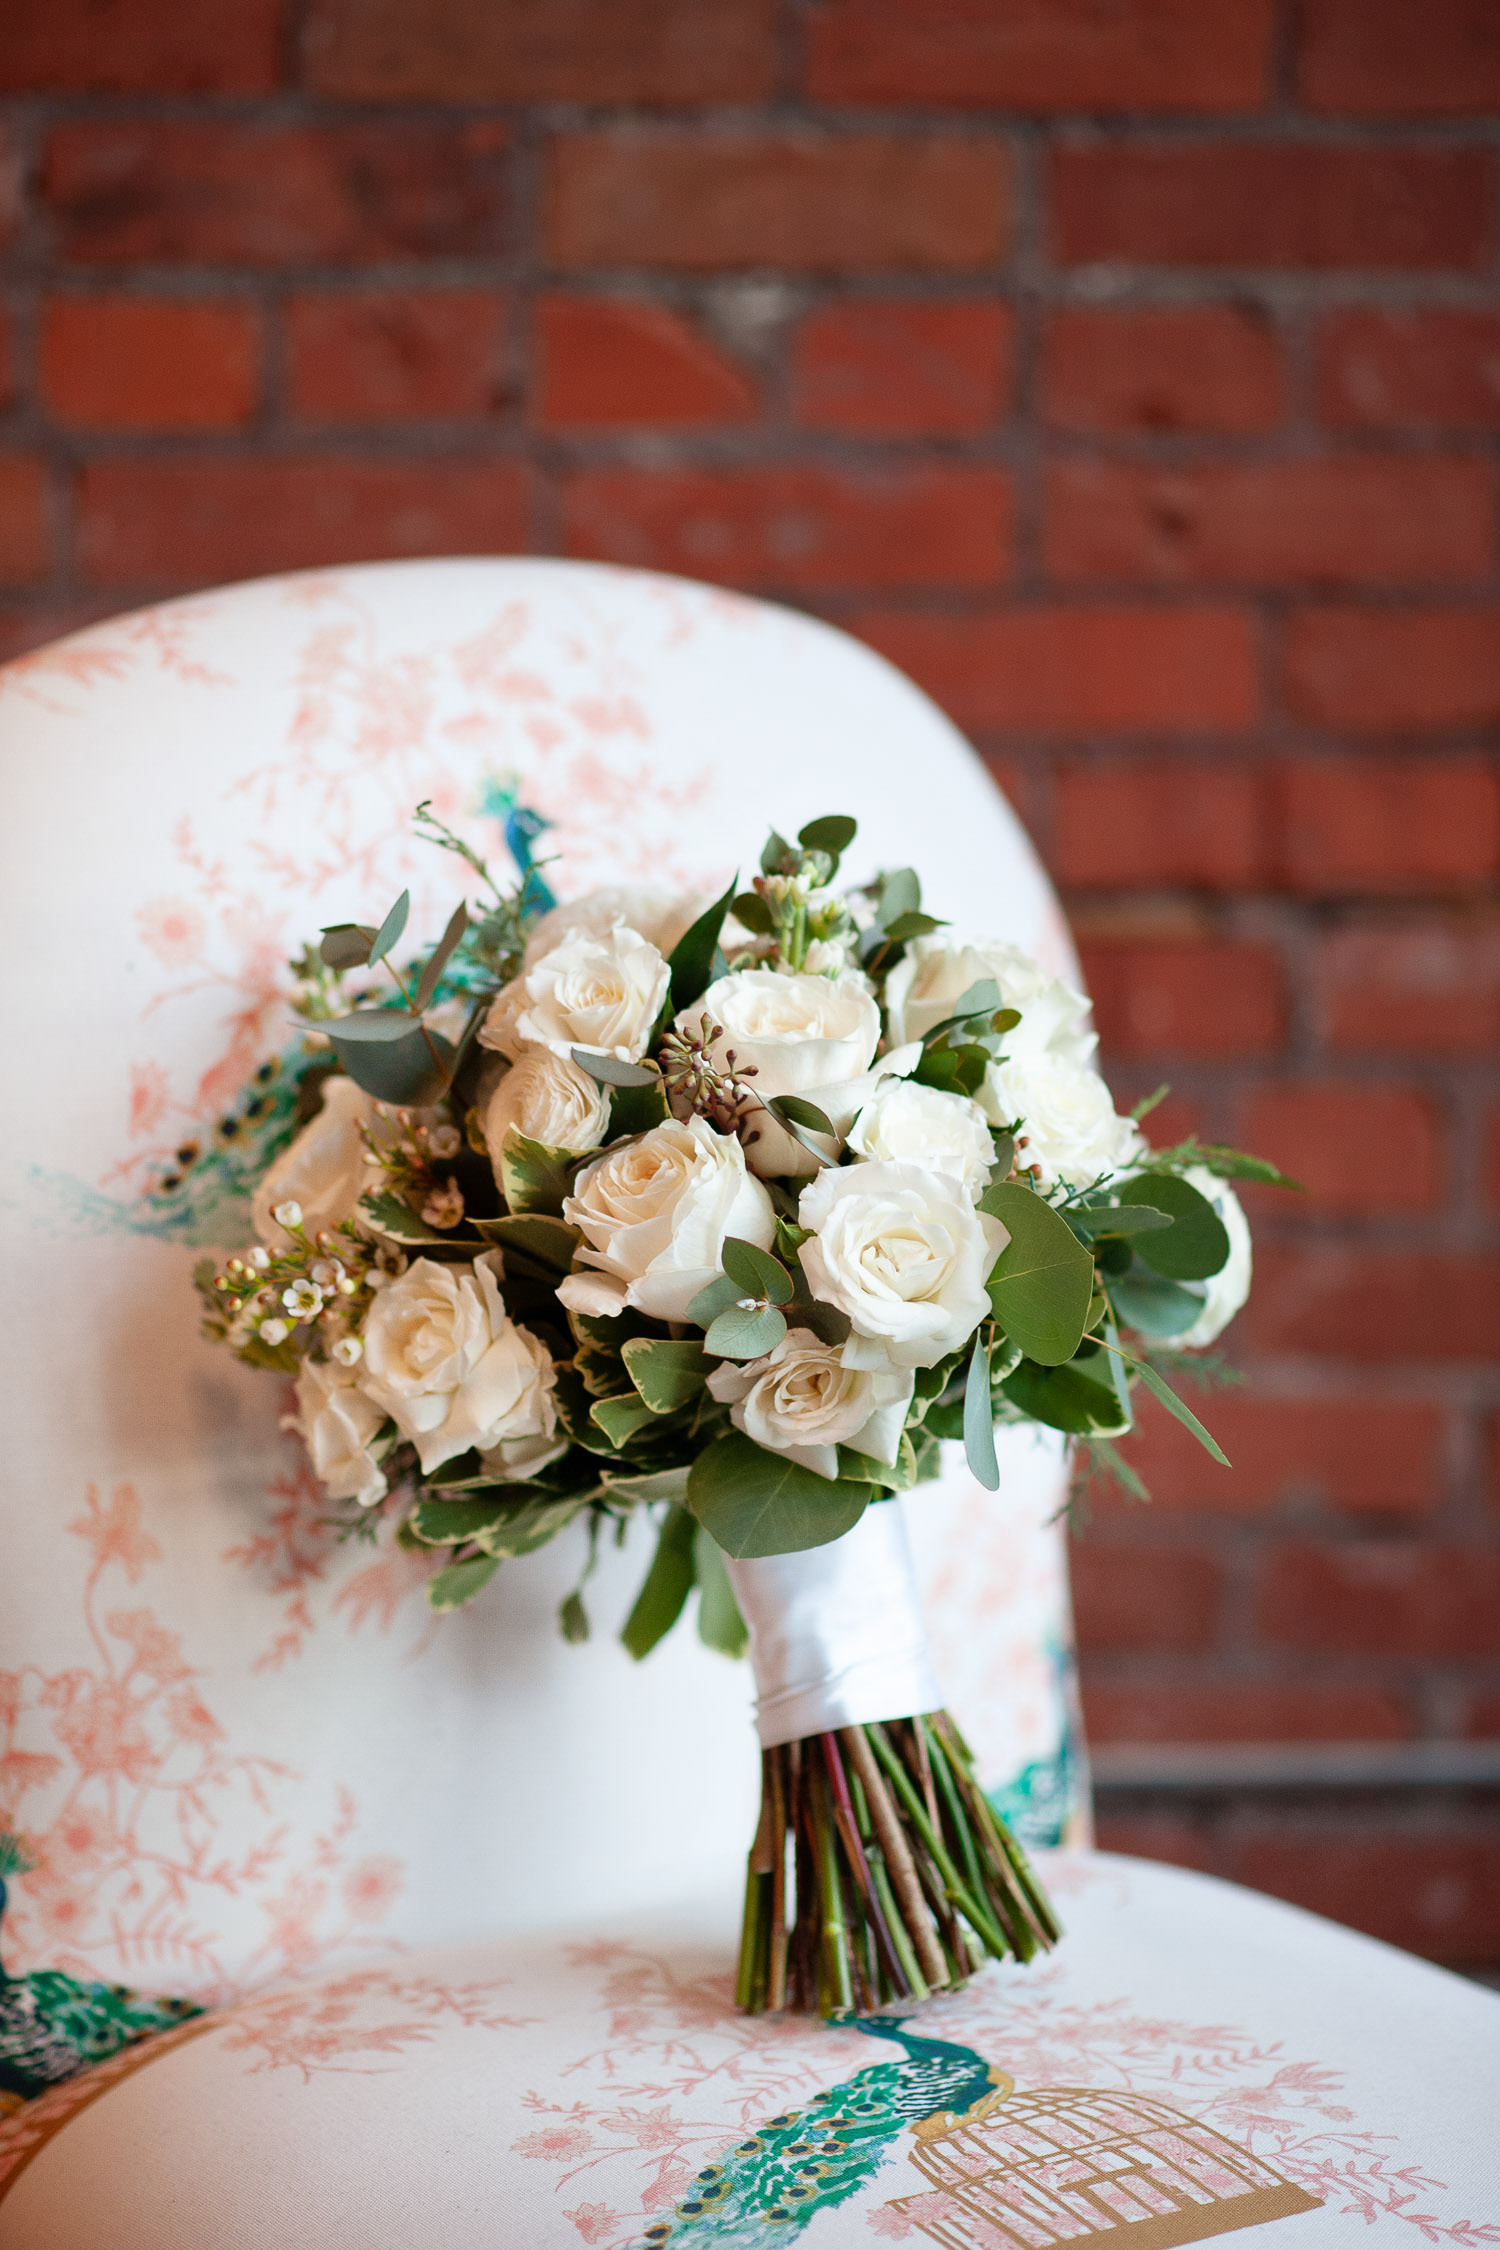 The bride's bouquet on a chair at Venue 308 captured by Tara Whittaker Photography